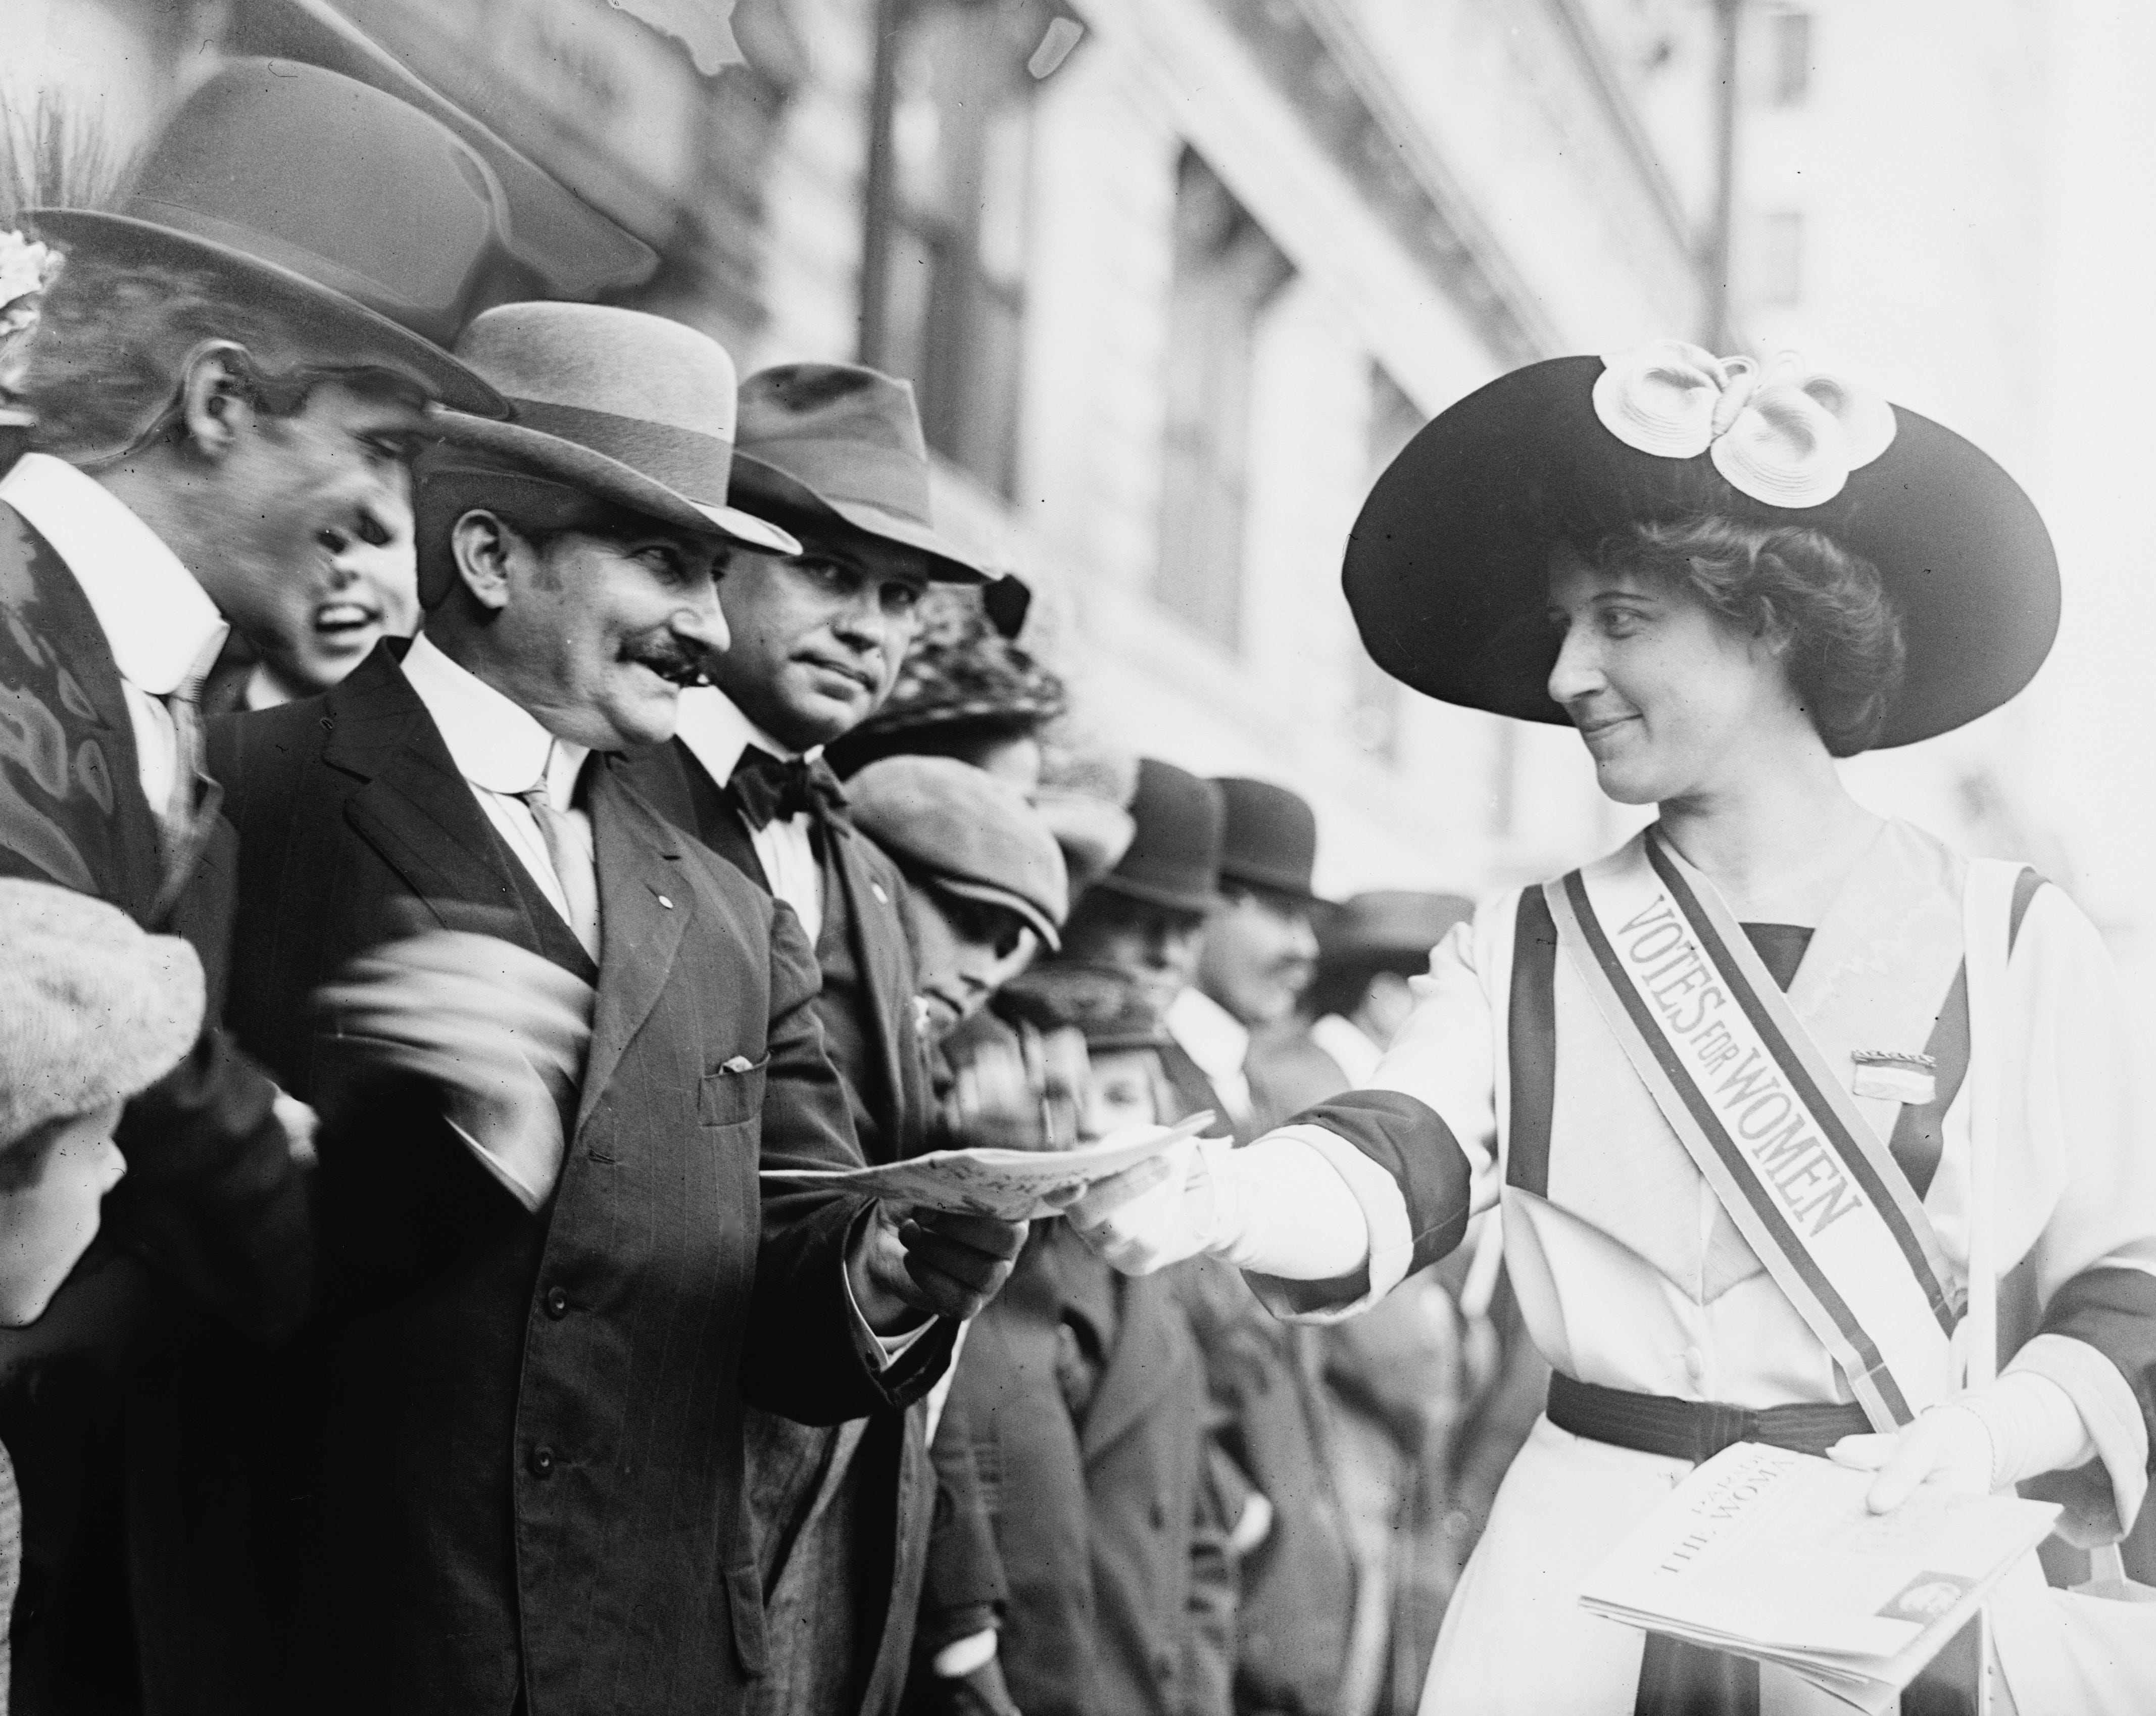 Inez Milholland crusades for the ability for women to vote in New York in 1912.